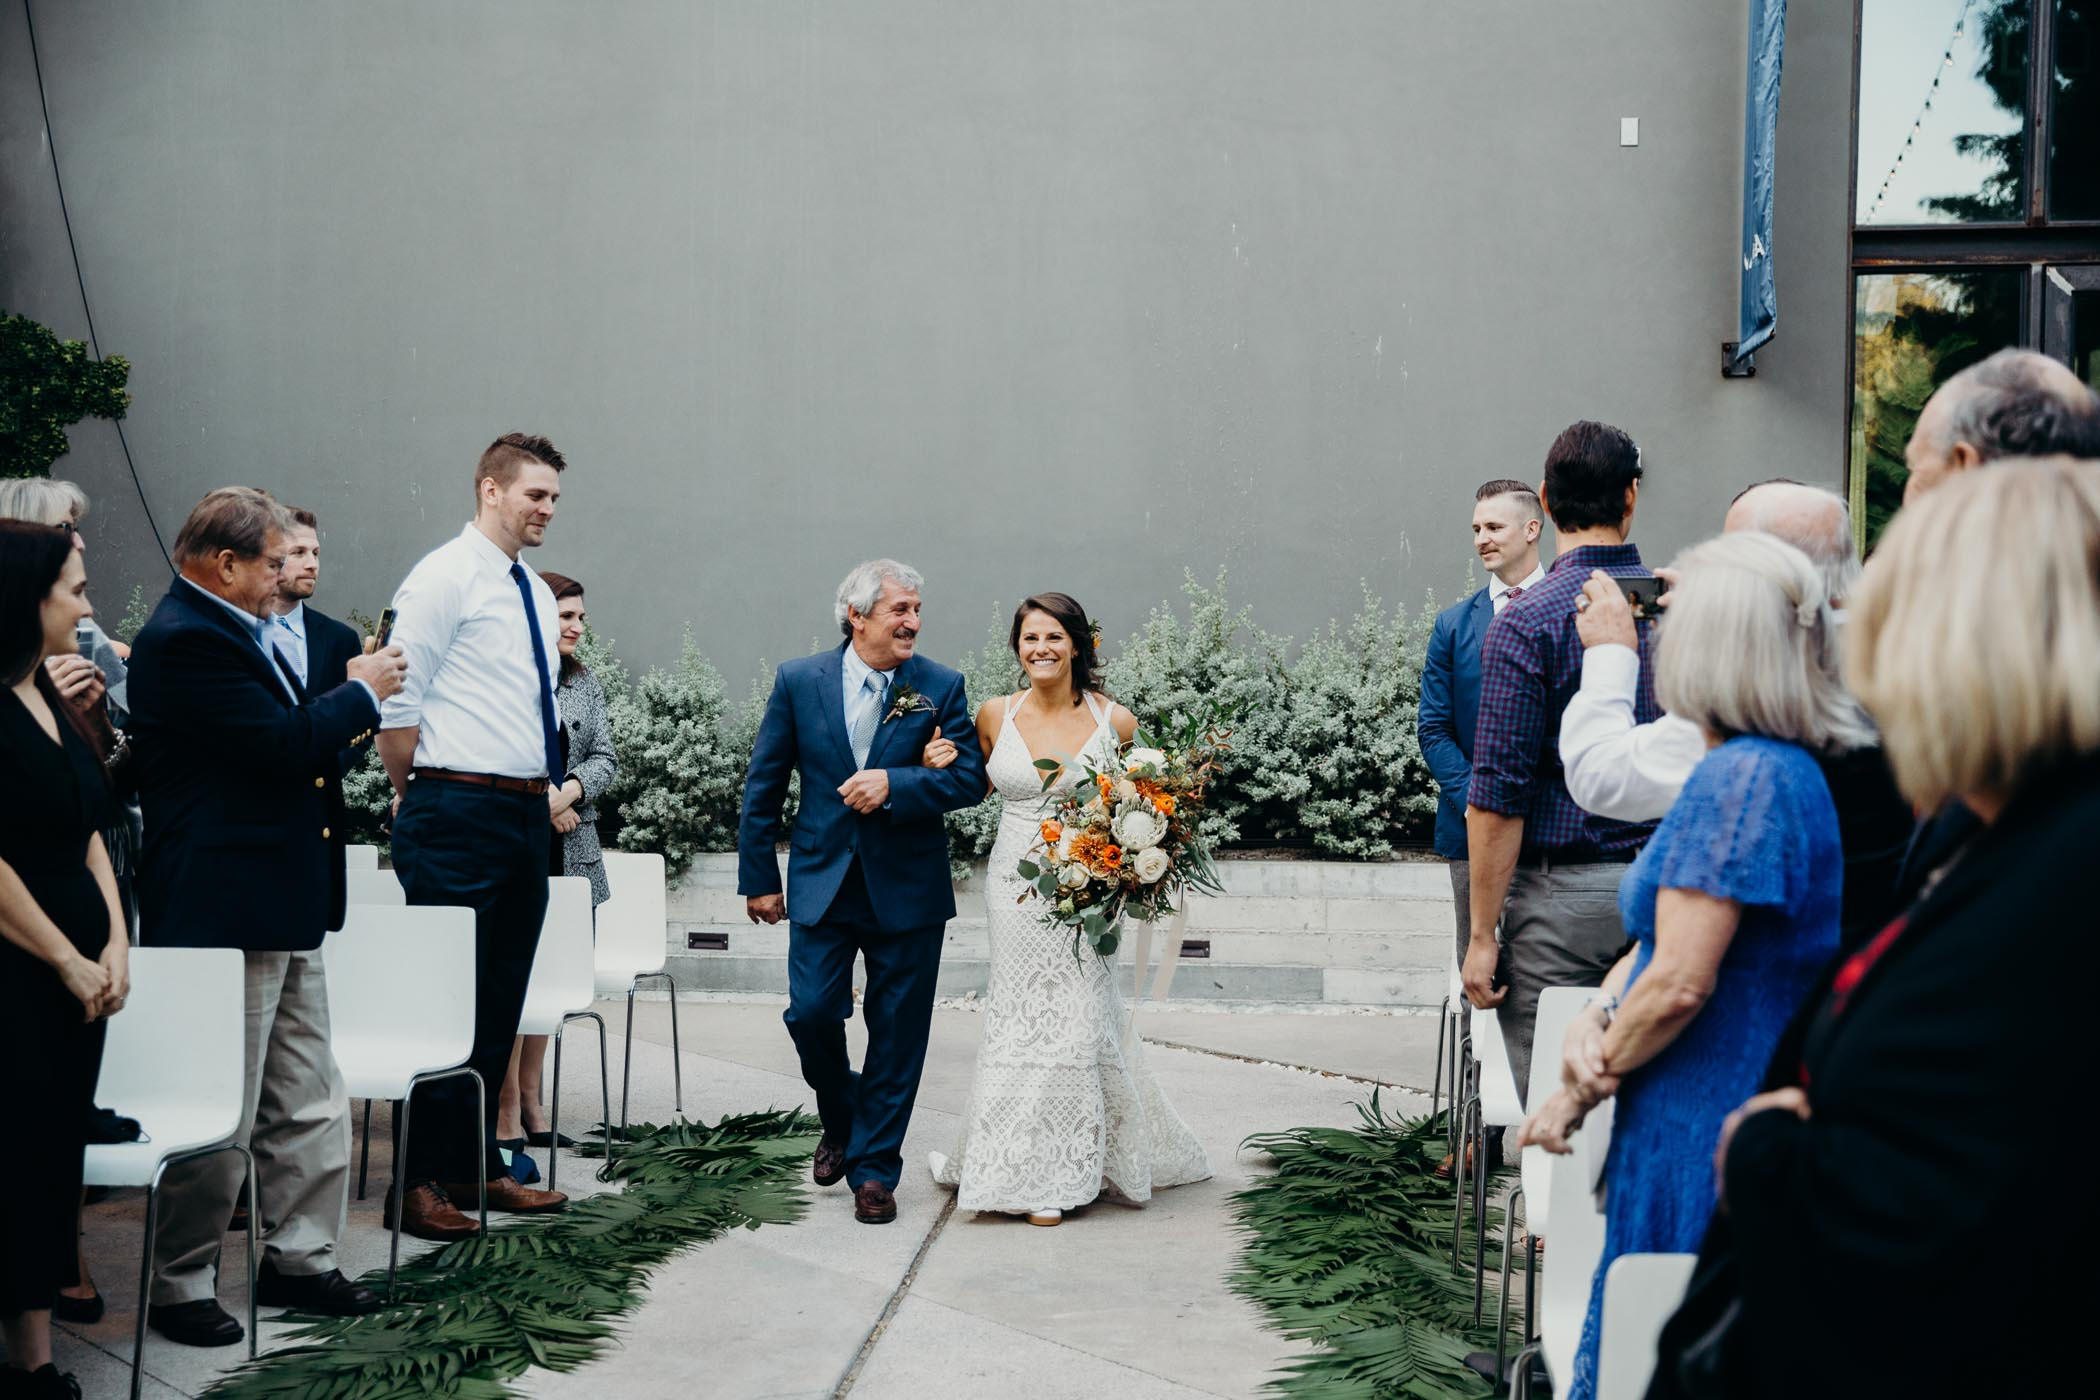 Dad and his daughter walking down the aisle in her wedding. She is wearing a boho dress and holding flowers and palm leaves line the aisle.